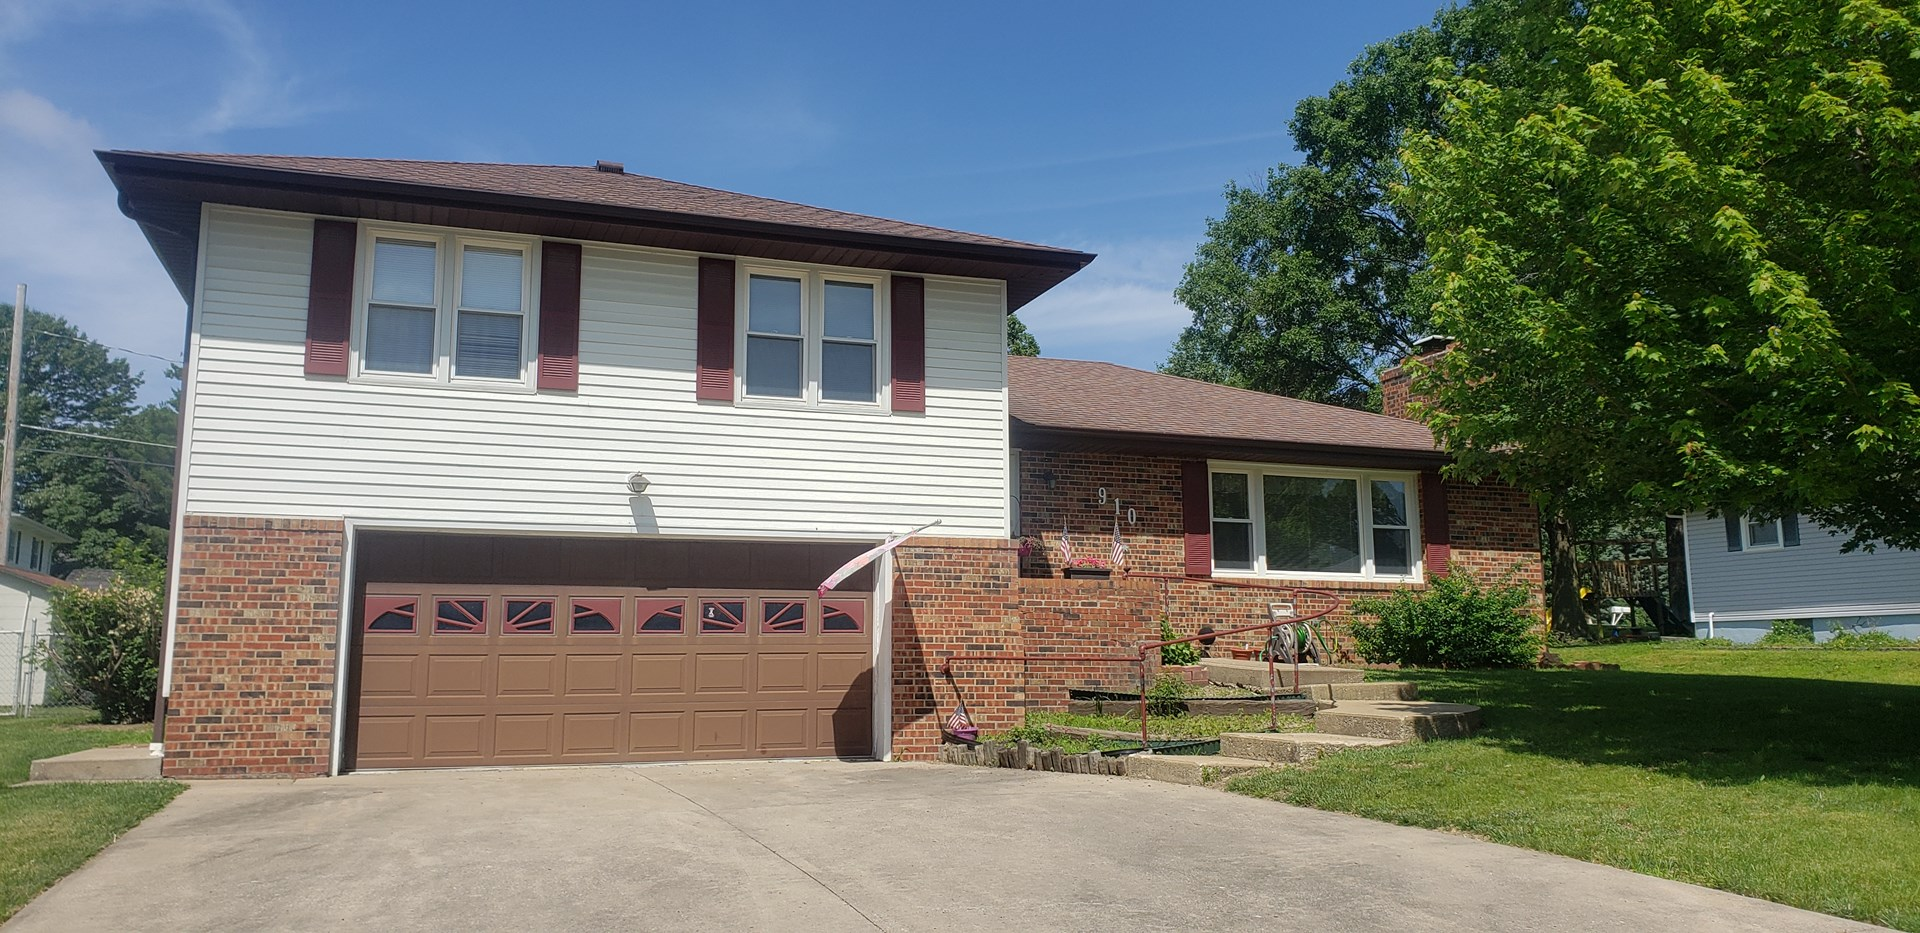 Move-In Ready Split Level For Sale, Chillicothe, MO